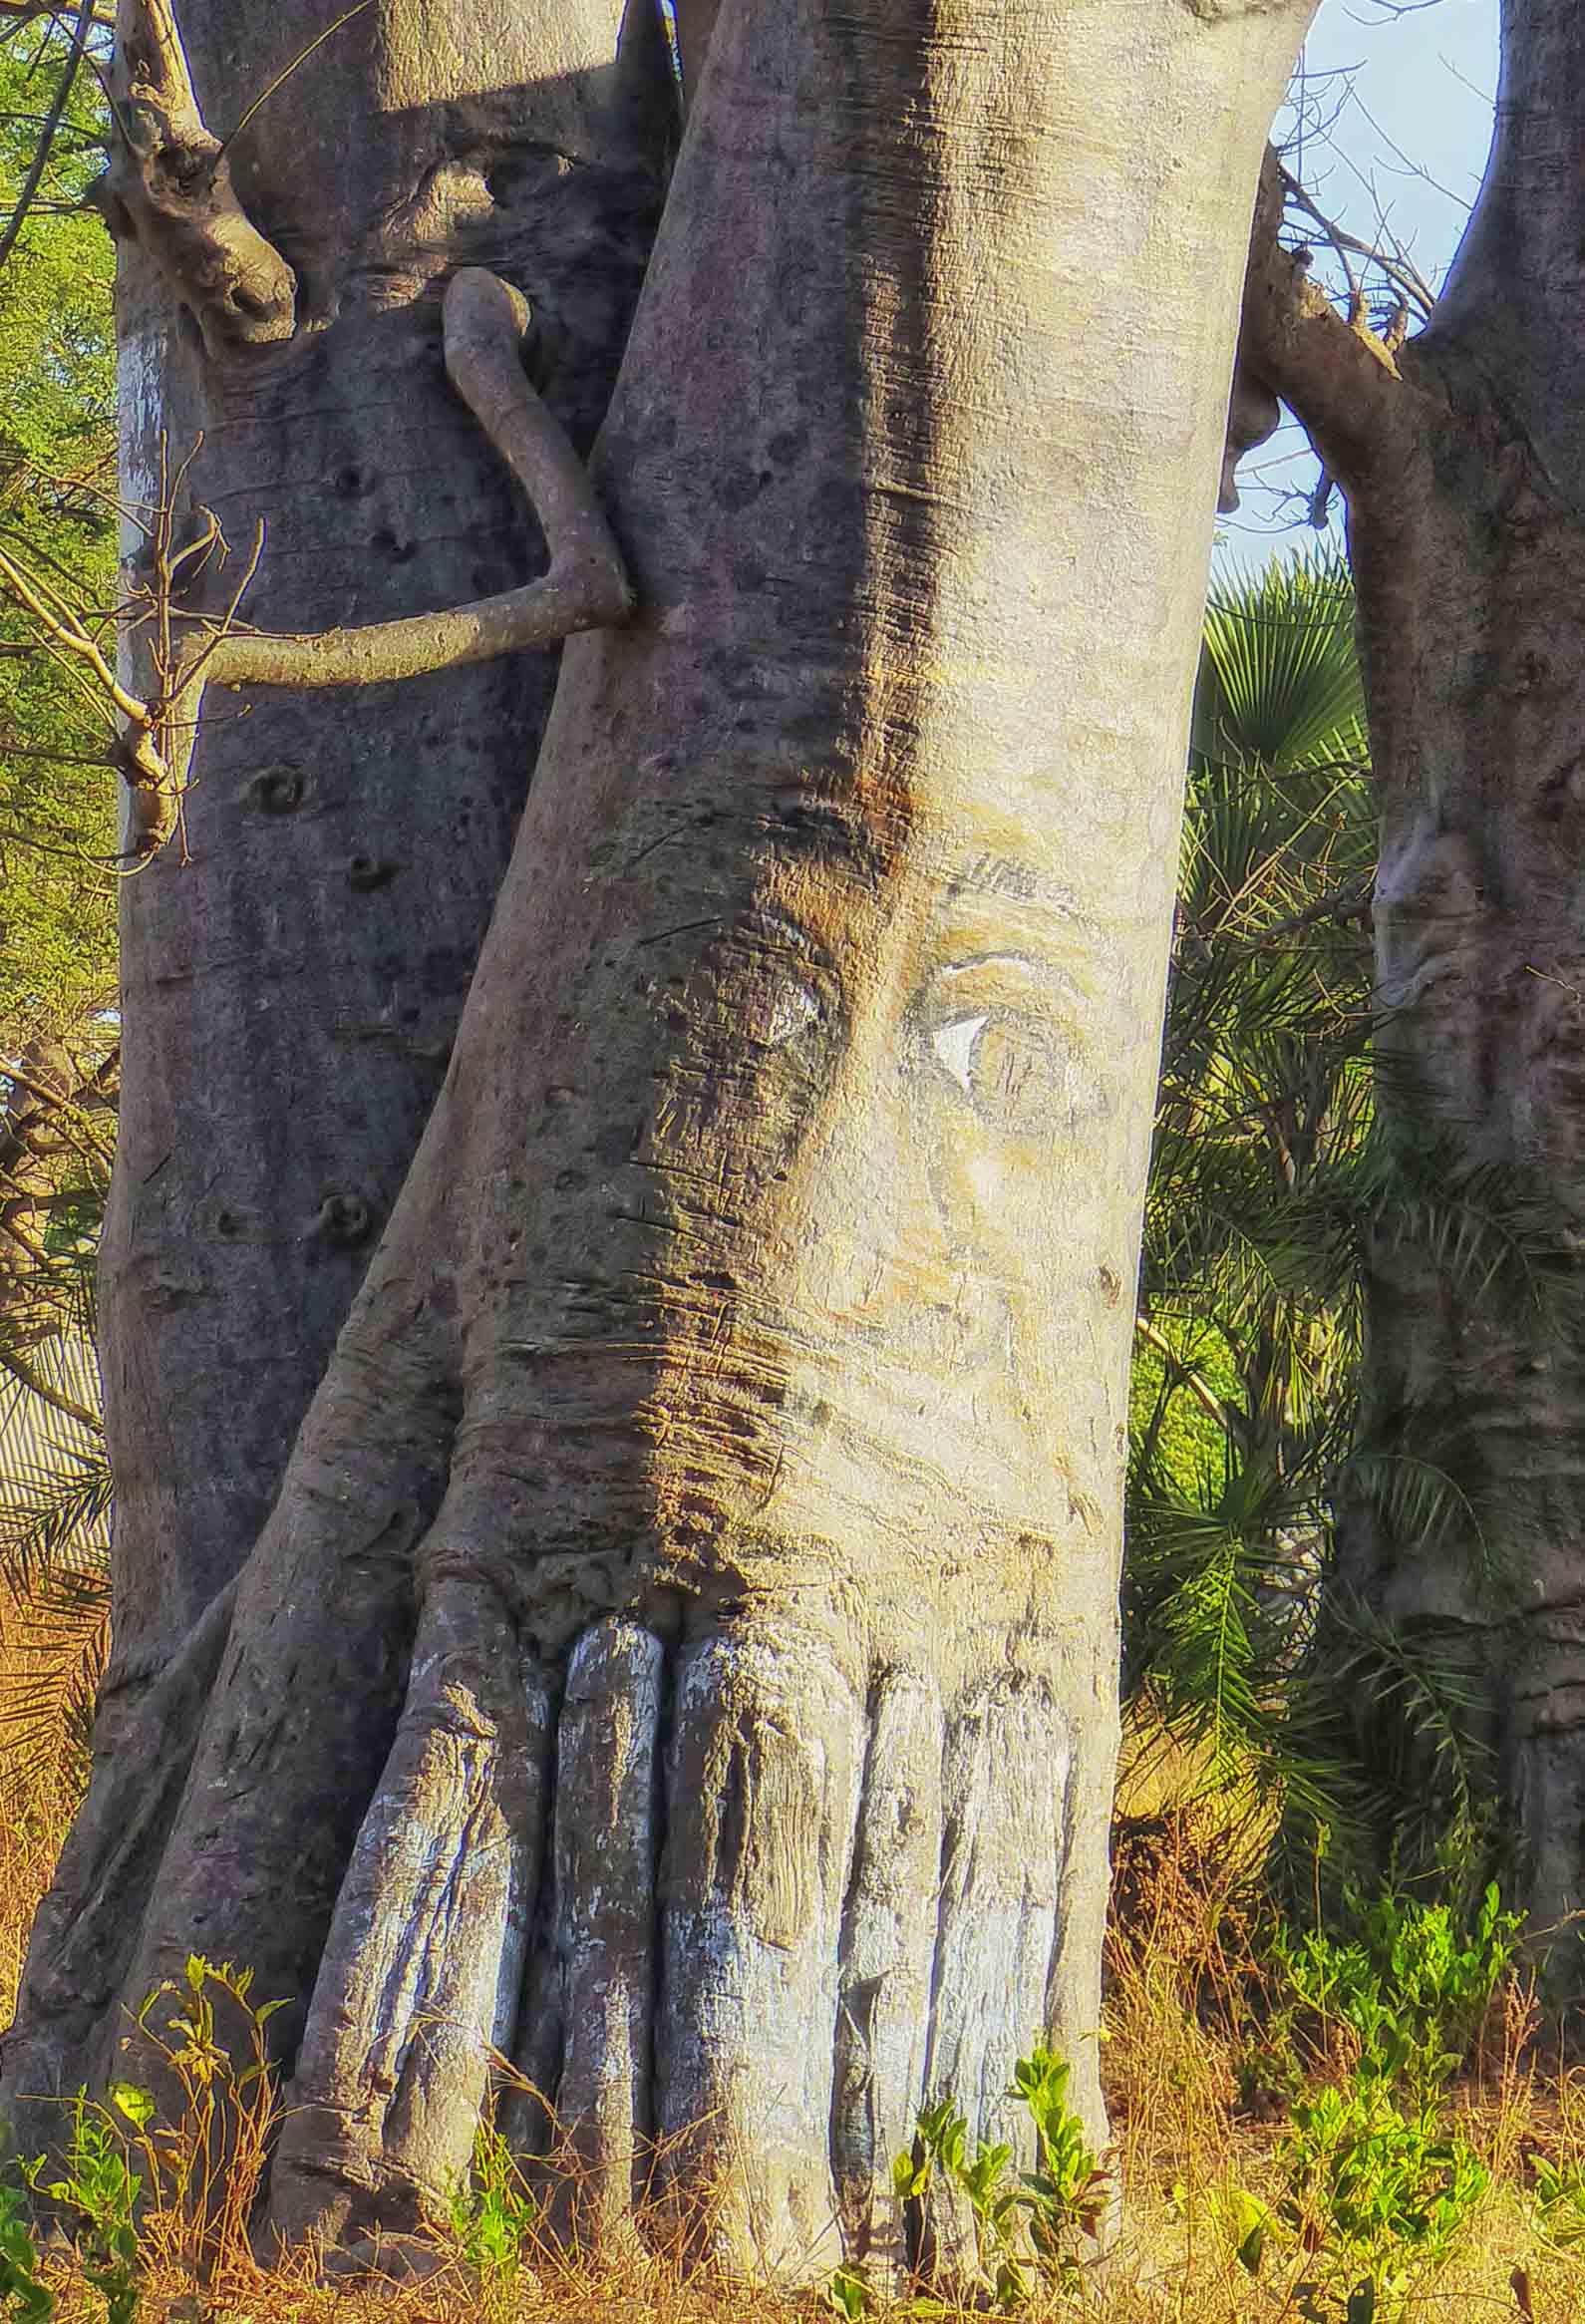 Eyes painted on tree trunk